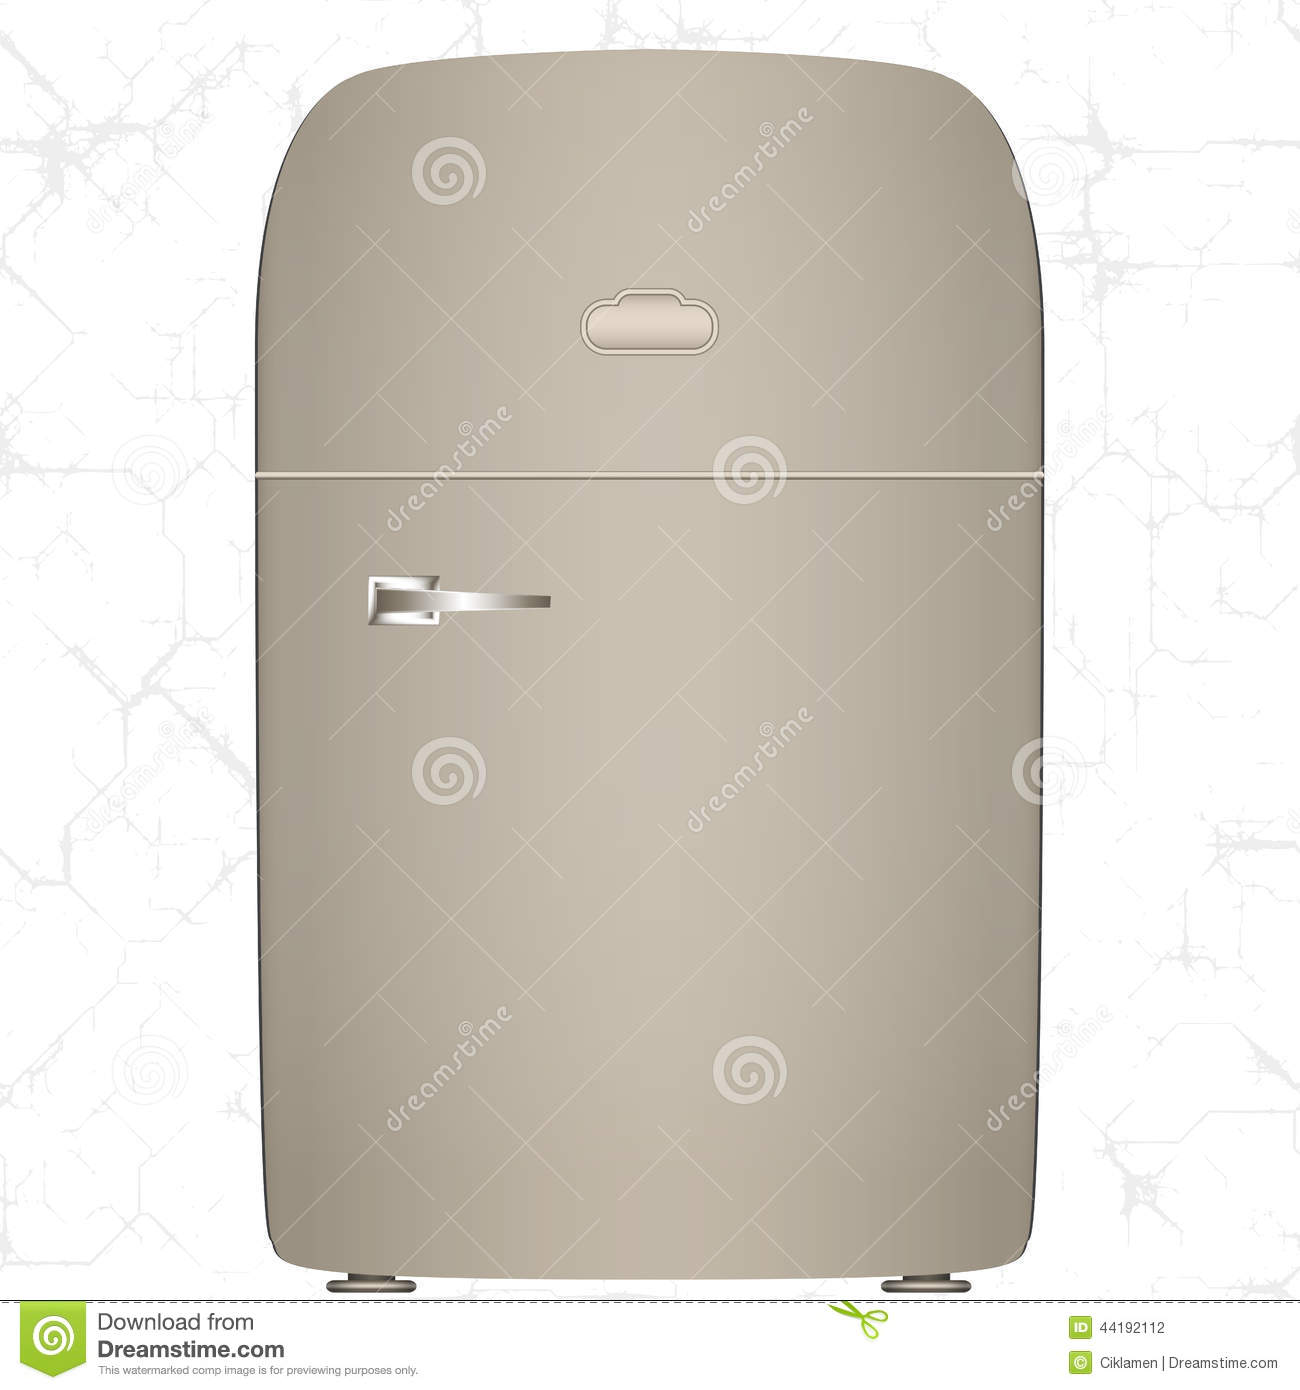 Old Refrigerator Stock Vector   Image  44192112